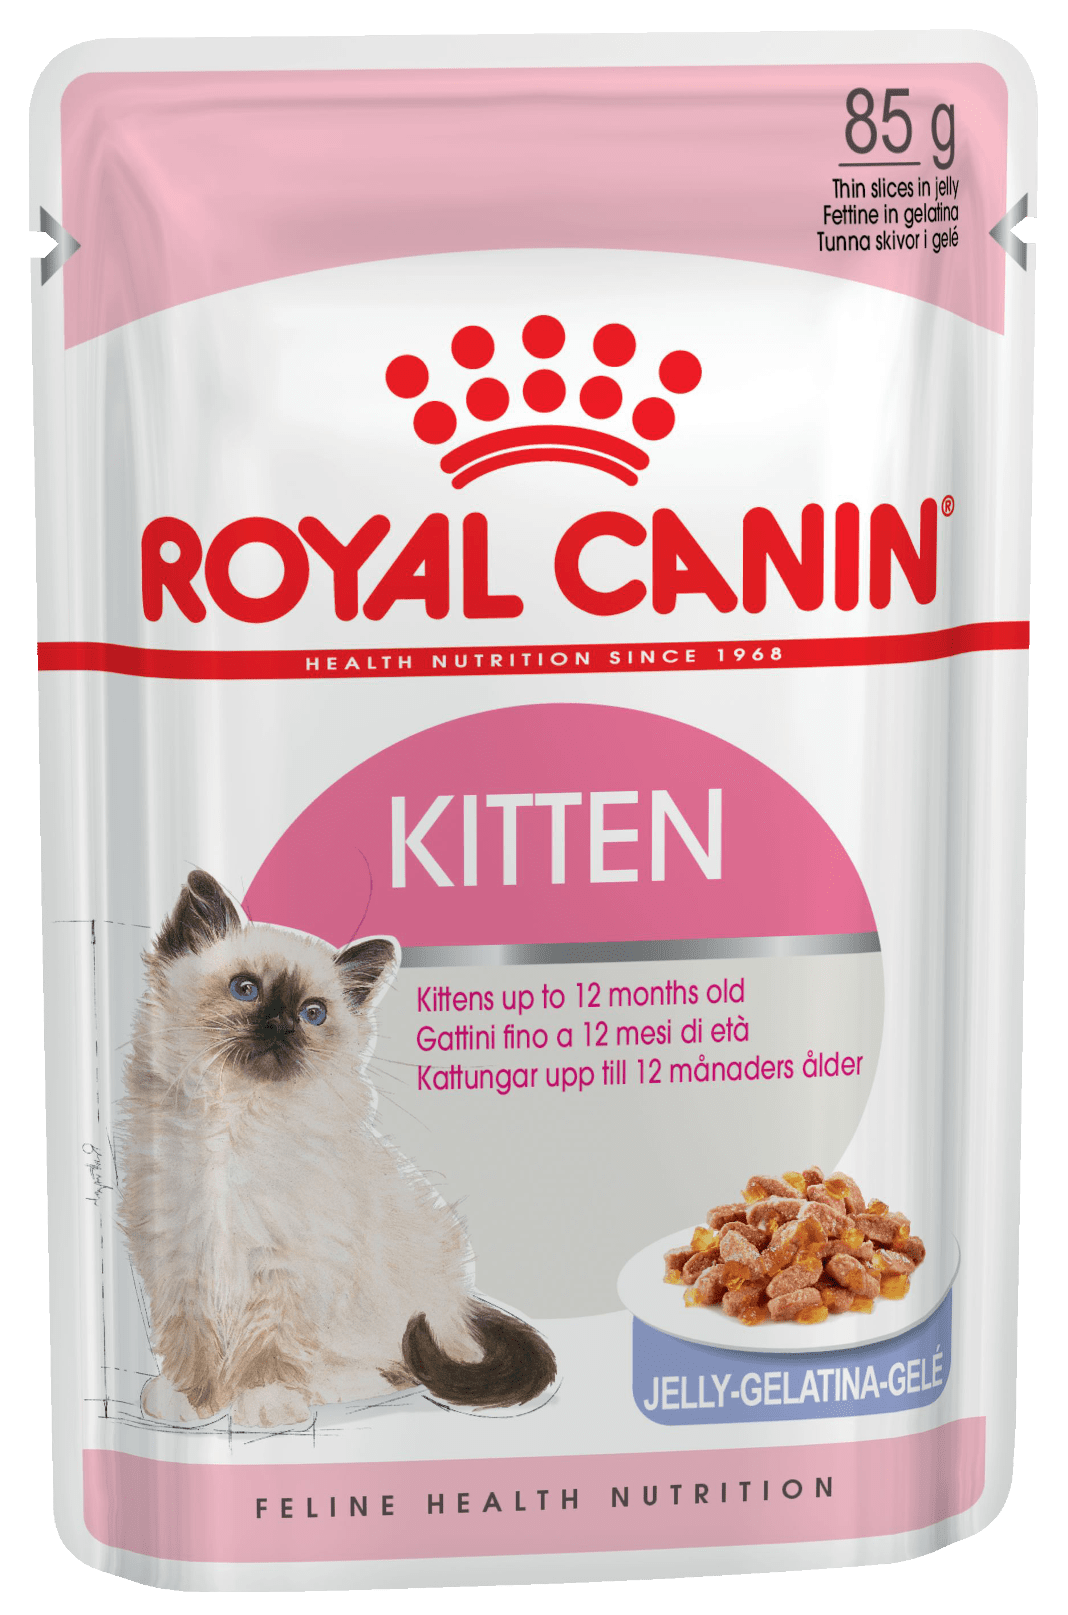 Royal Canin Пауч для котят с 4 до 12 месяцев, Royal Canin Kitten Instinctive (в желе) d_kitten_in_jelly.png